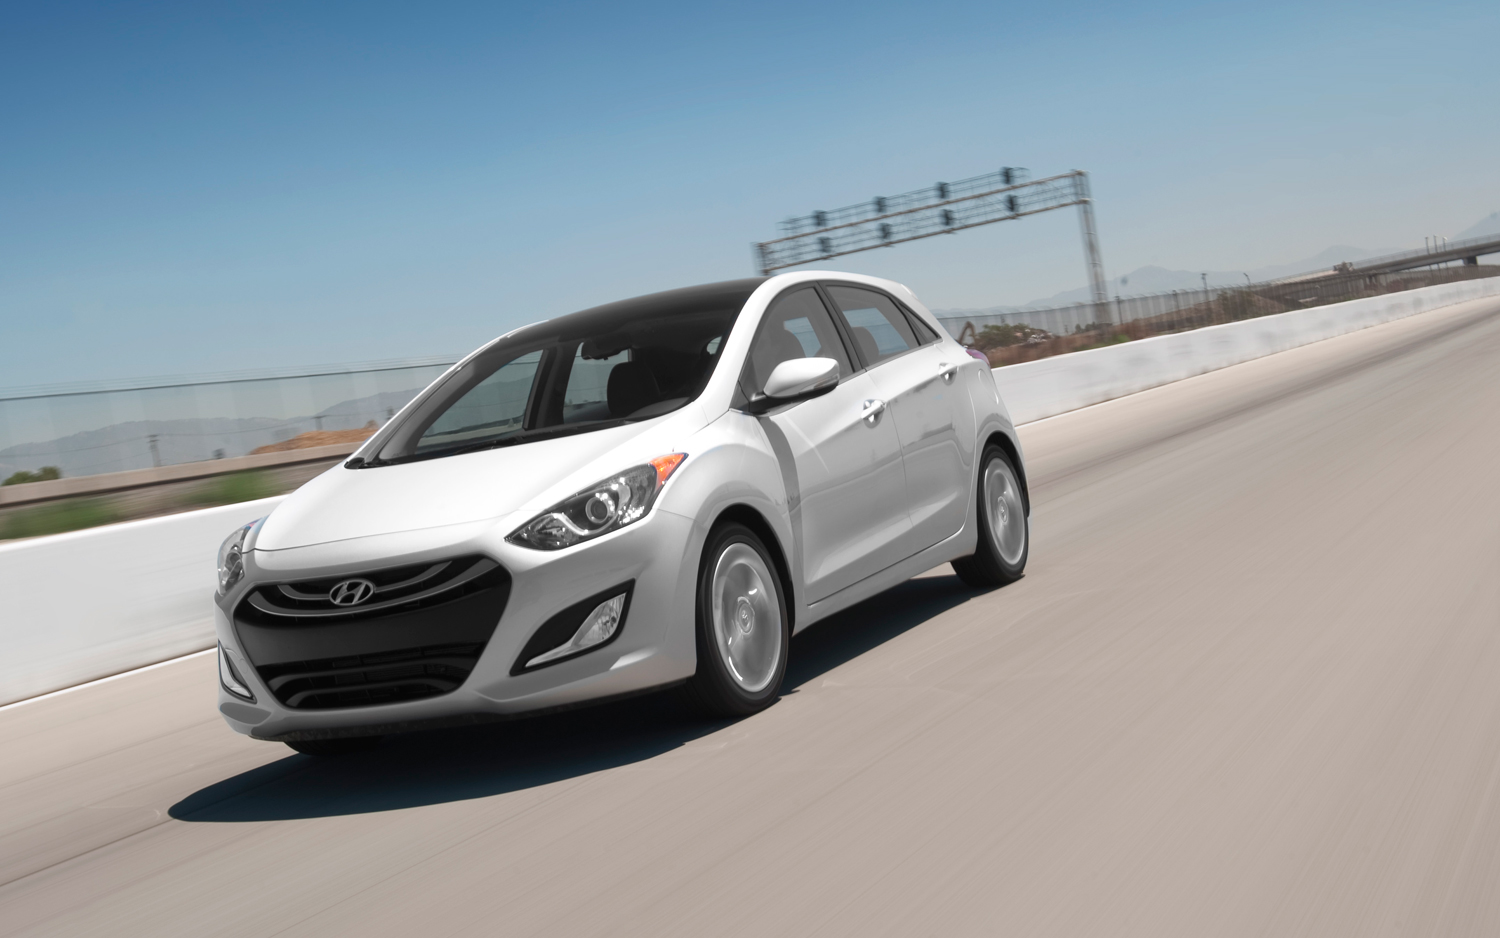 2019 Hyundai Elantra GT photo - 2